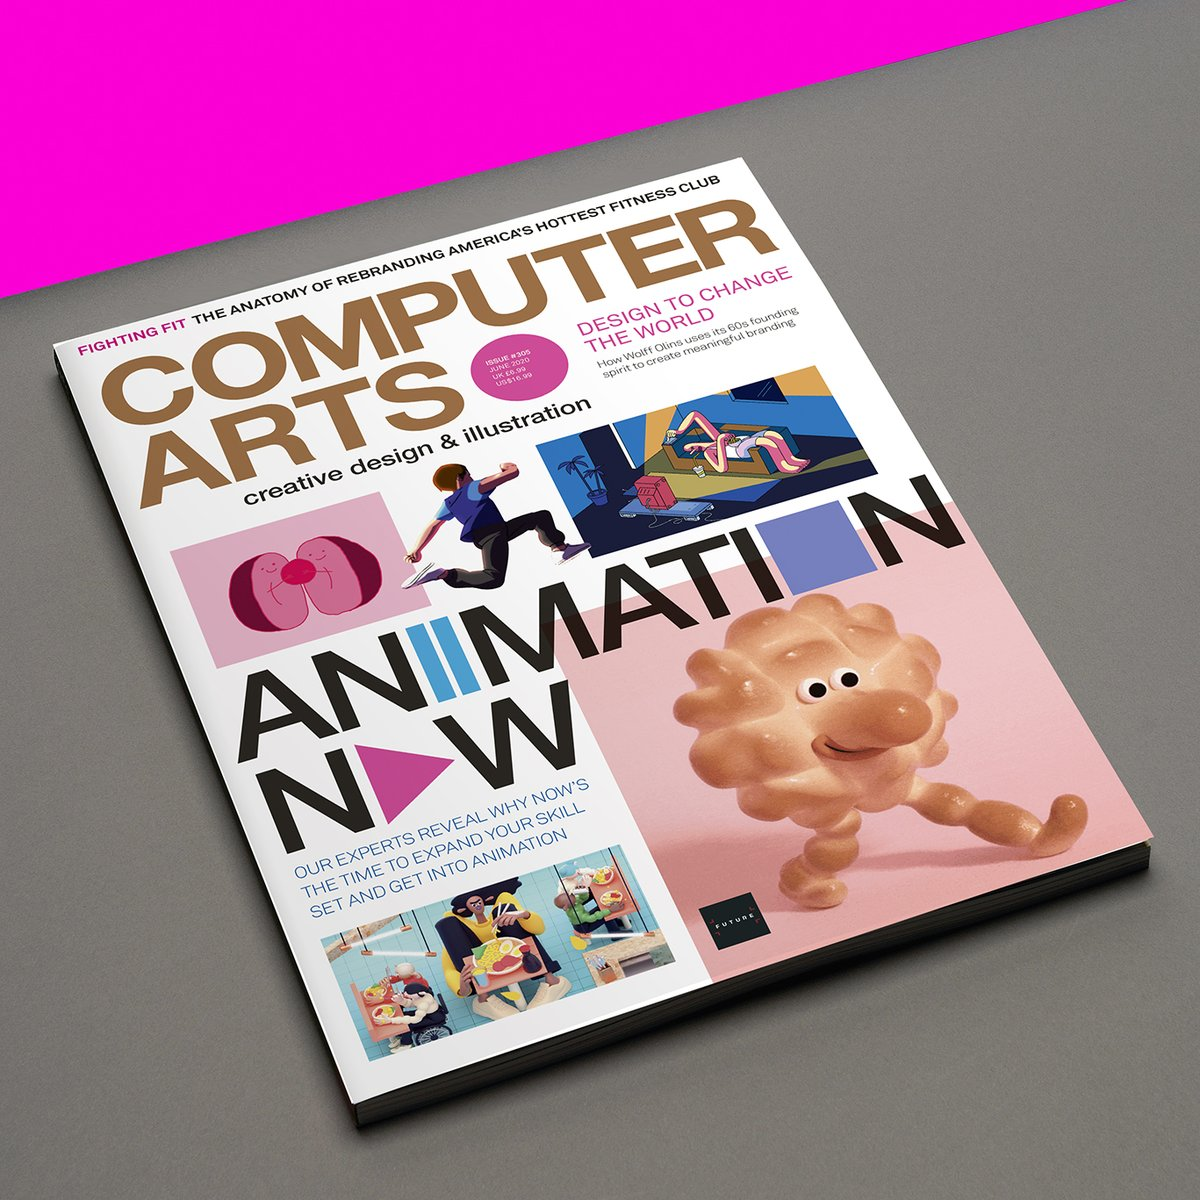 This is very sad, a beautiful magazine is closing down. Each issue was a pleasure to read with colourful inspiring designs of so many talented people. #computerarts @ComputerArts Hope there will be some way in the future to bring this back. Good luck to all the people involved